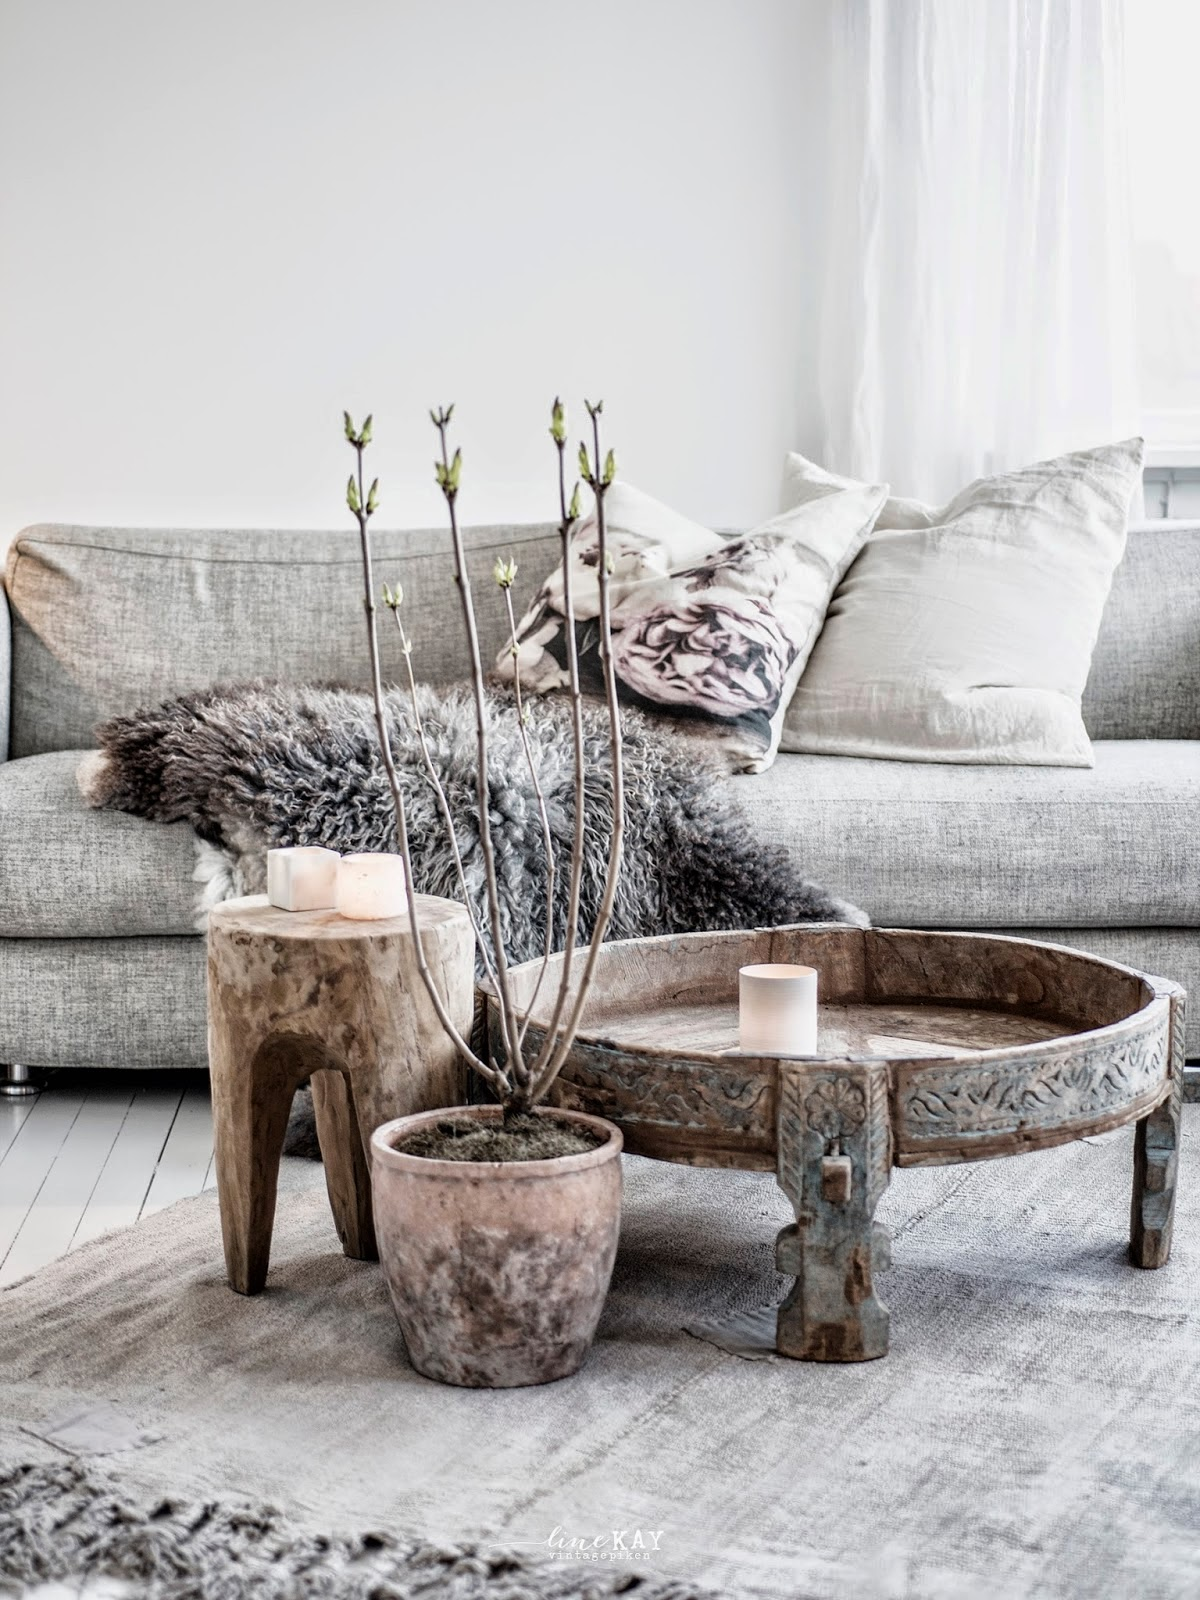 furniture | living space